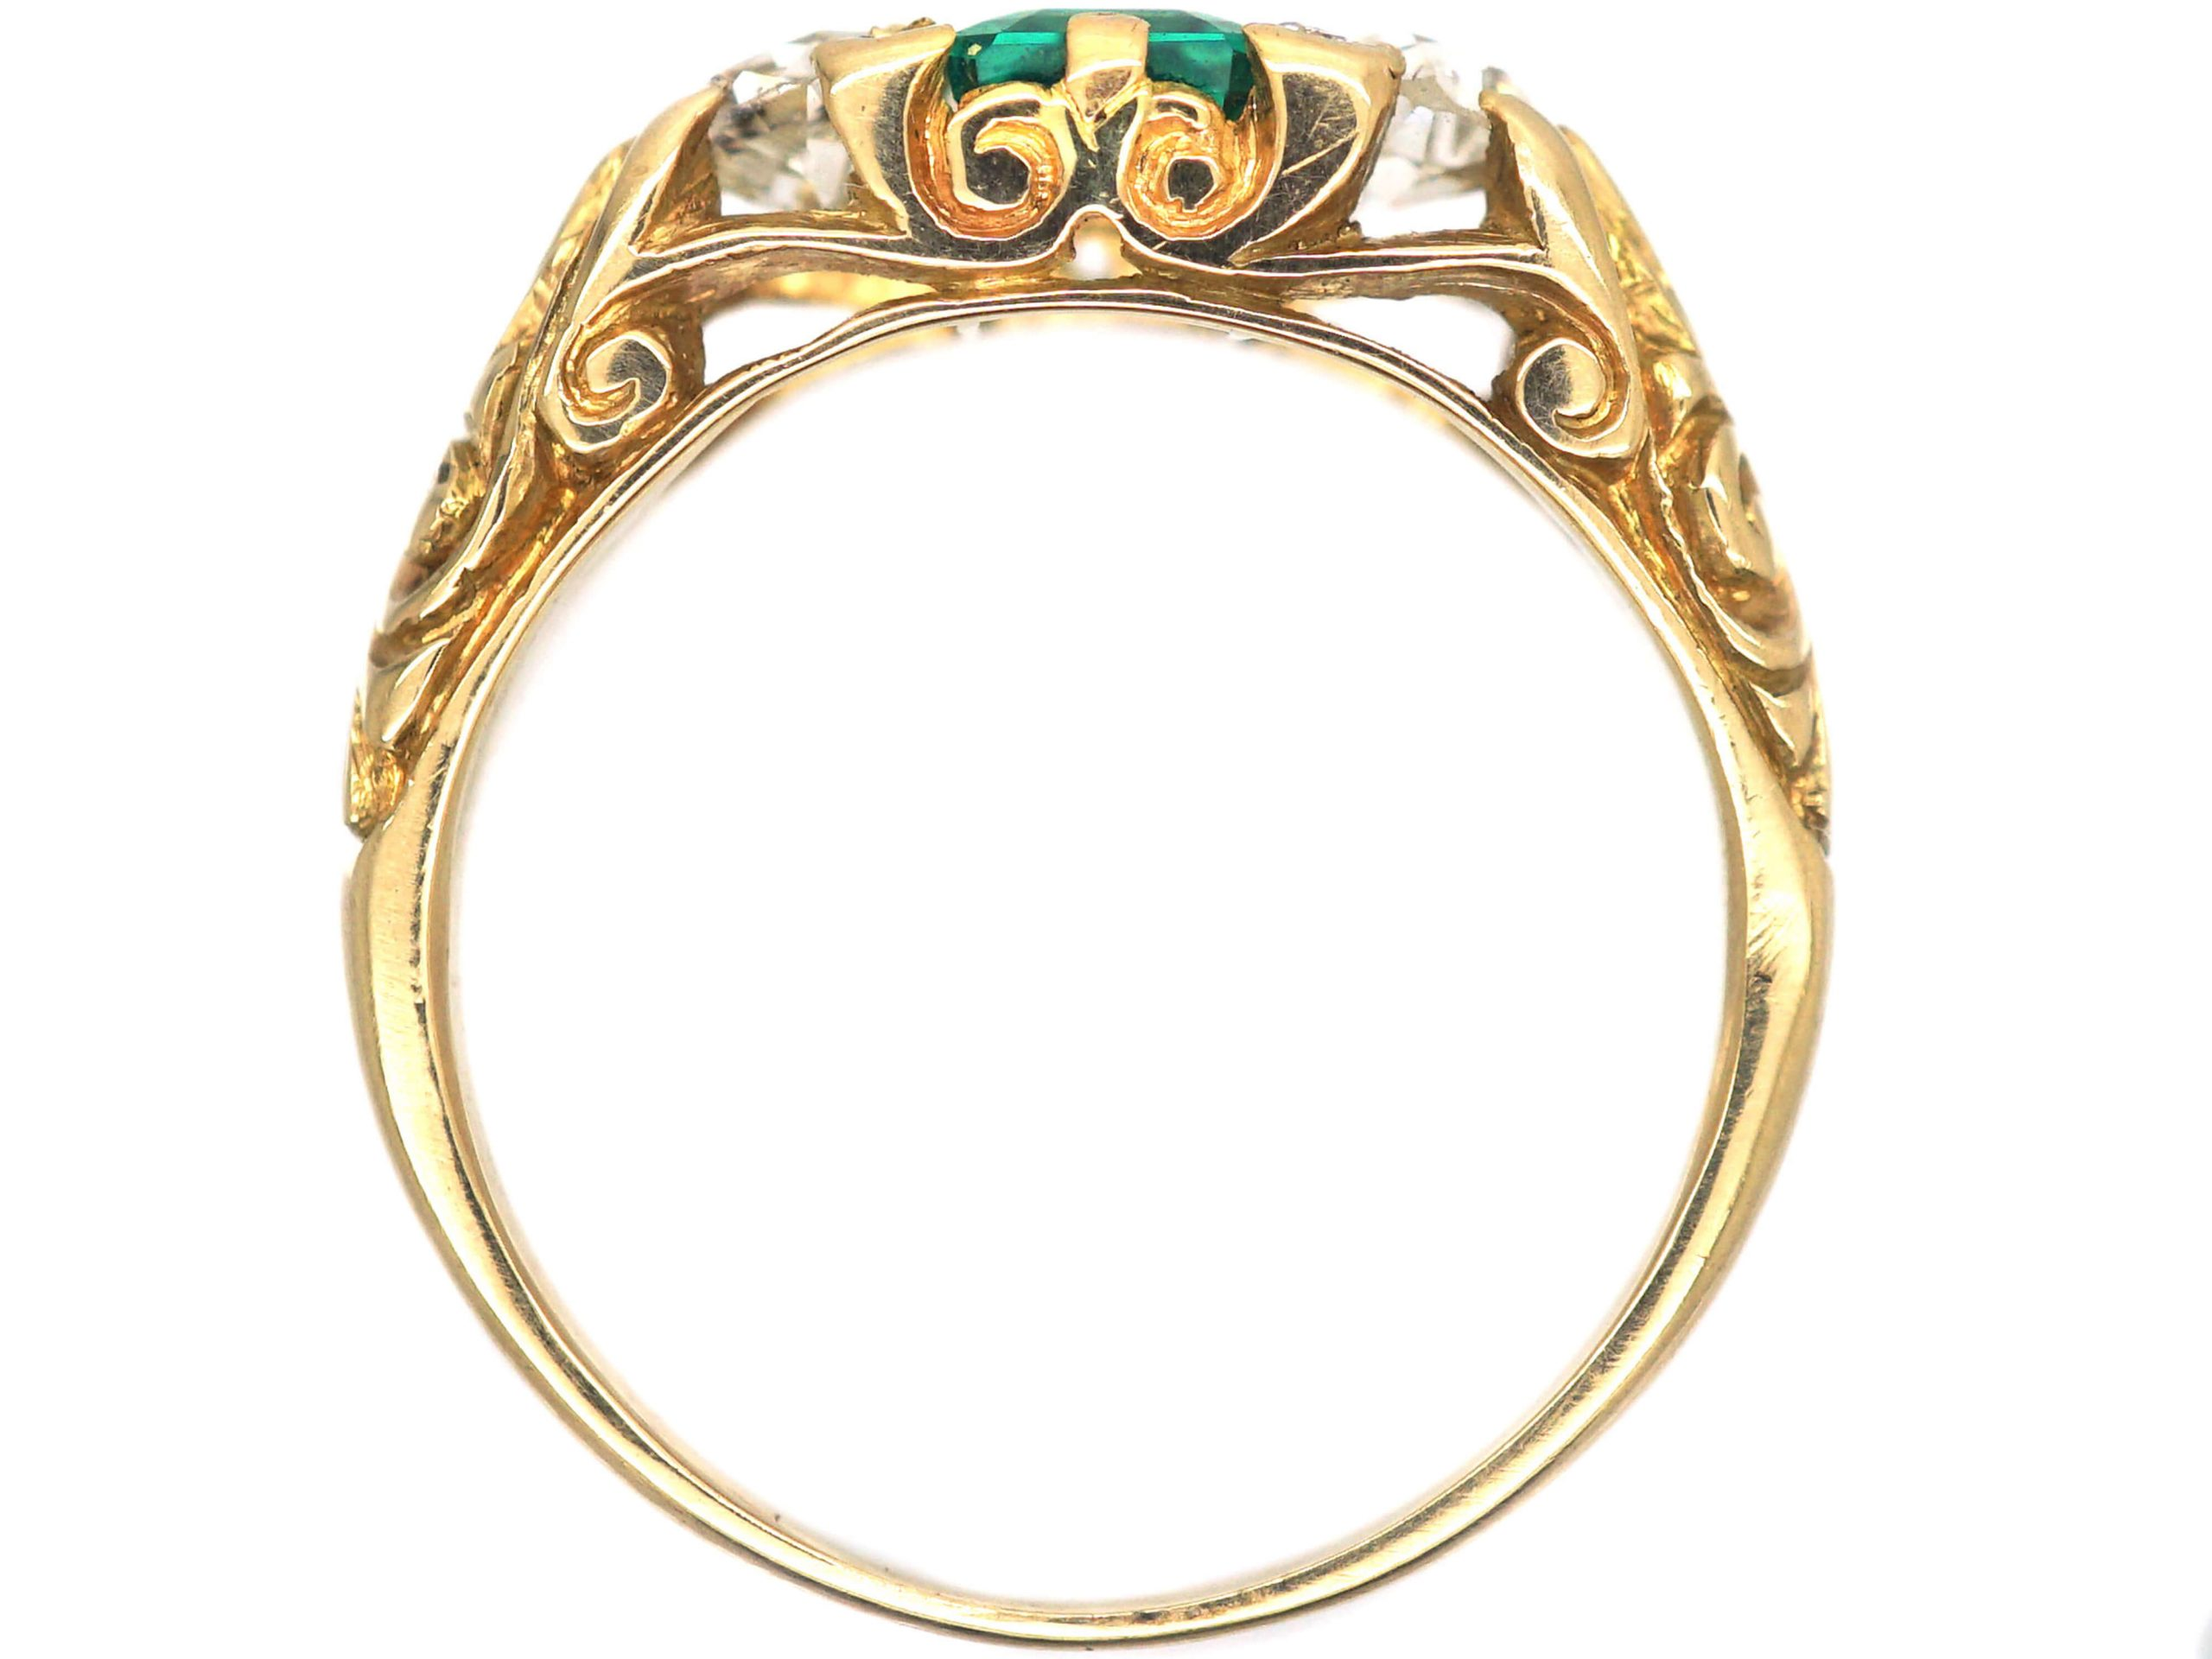 Victorian Carved Half Hoop Ring set with an Emerald & Diamonds